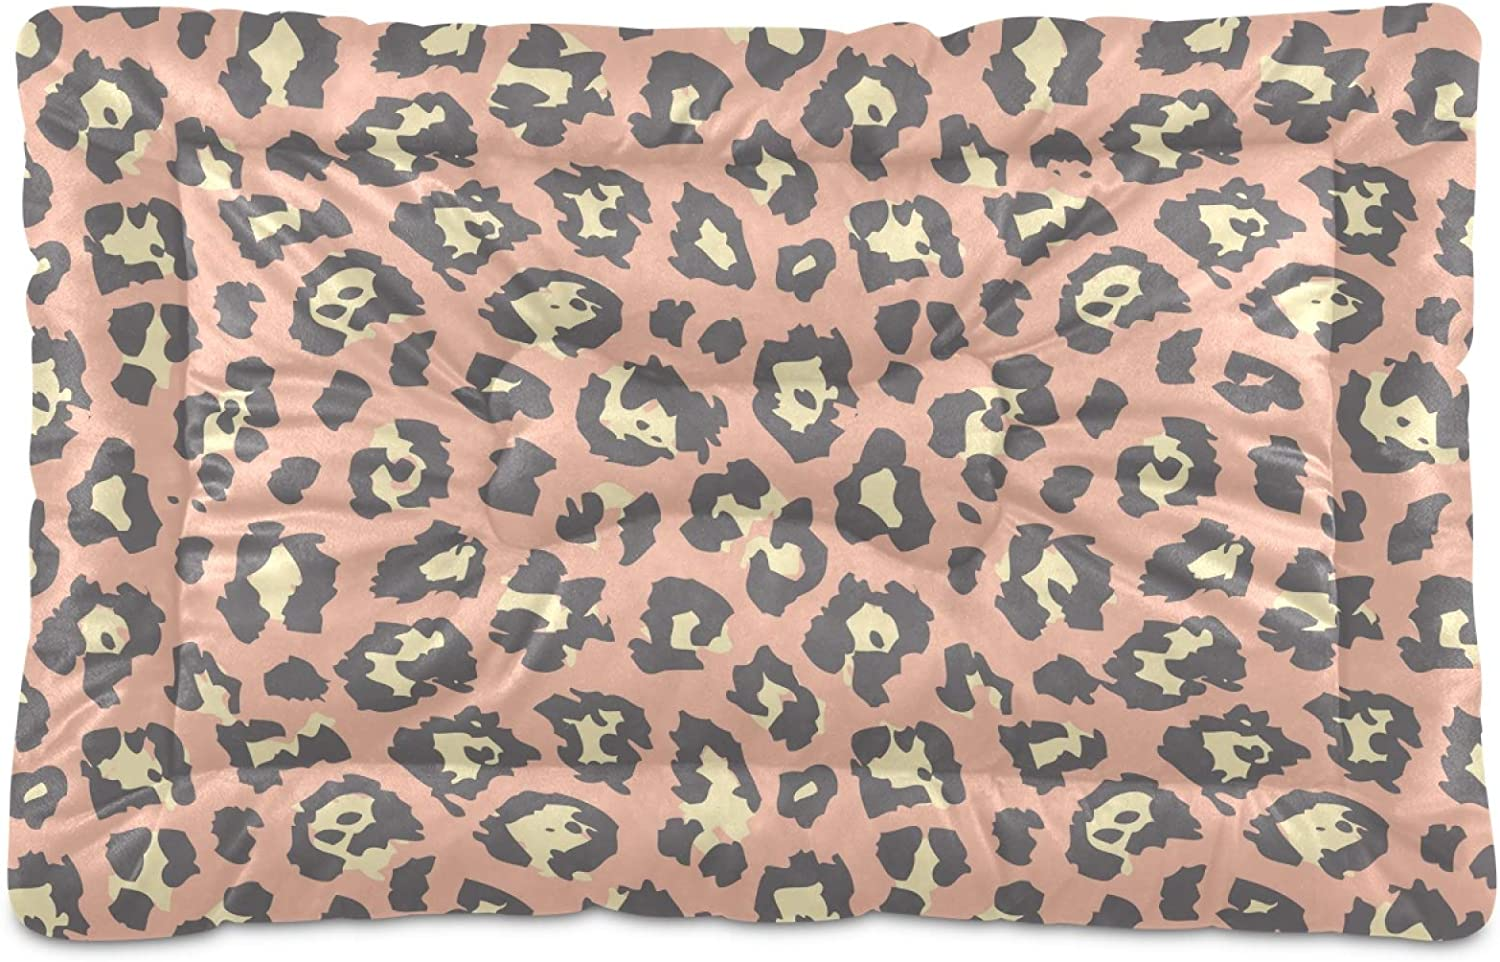 Dog Bed Popular standard Pink Leopard Print Crate L Popular products Washable Mattress for Mat